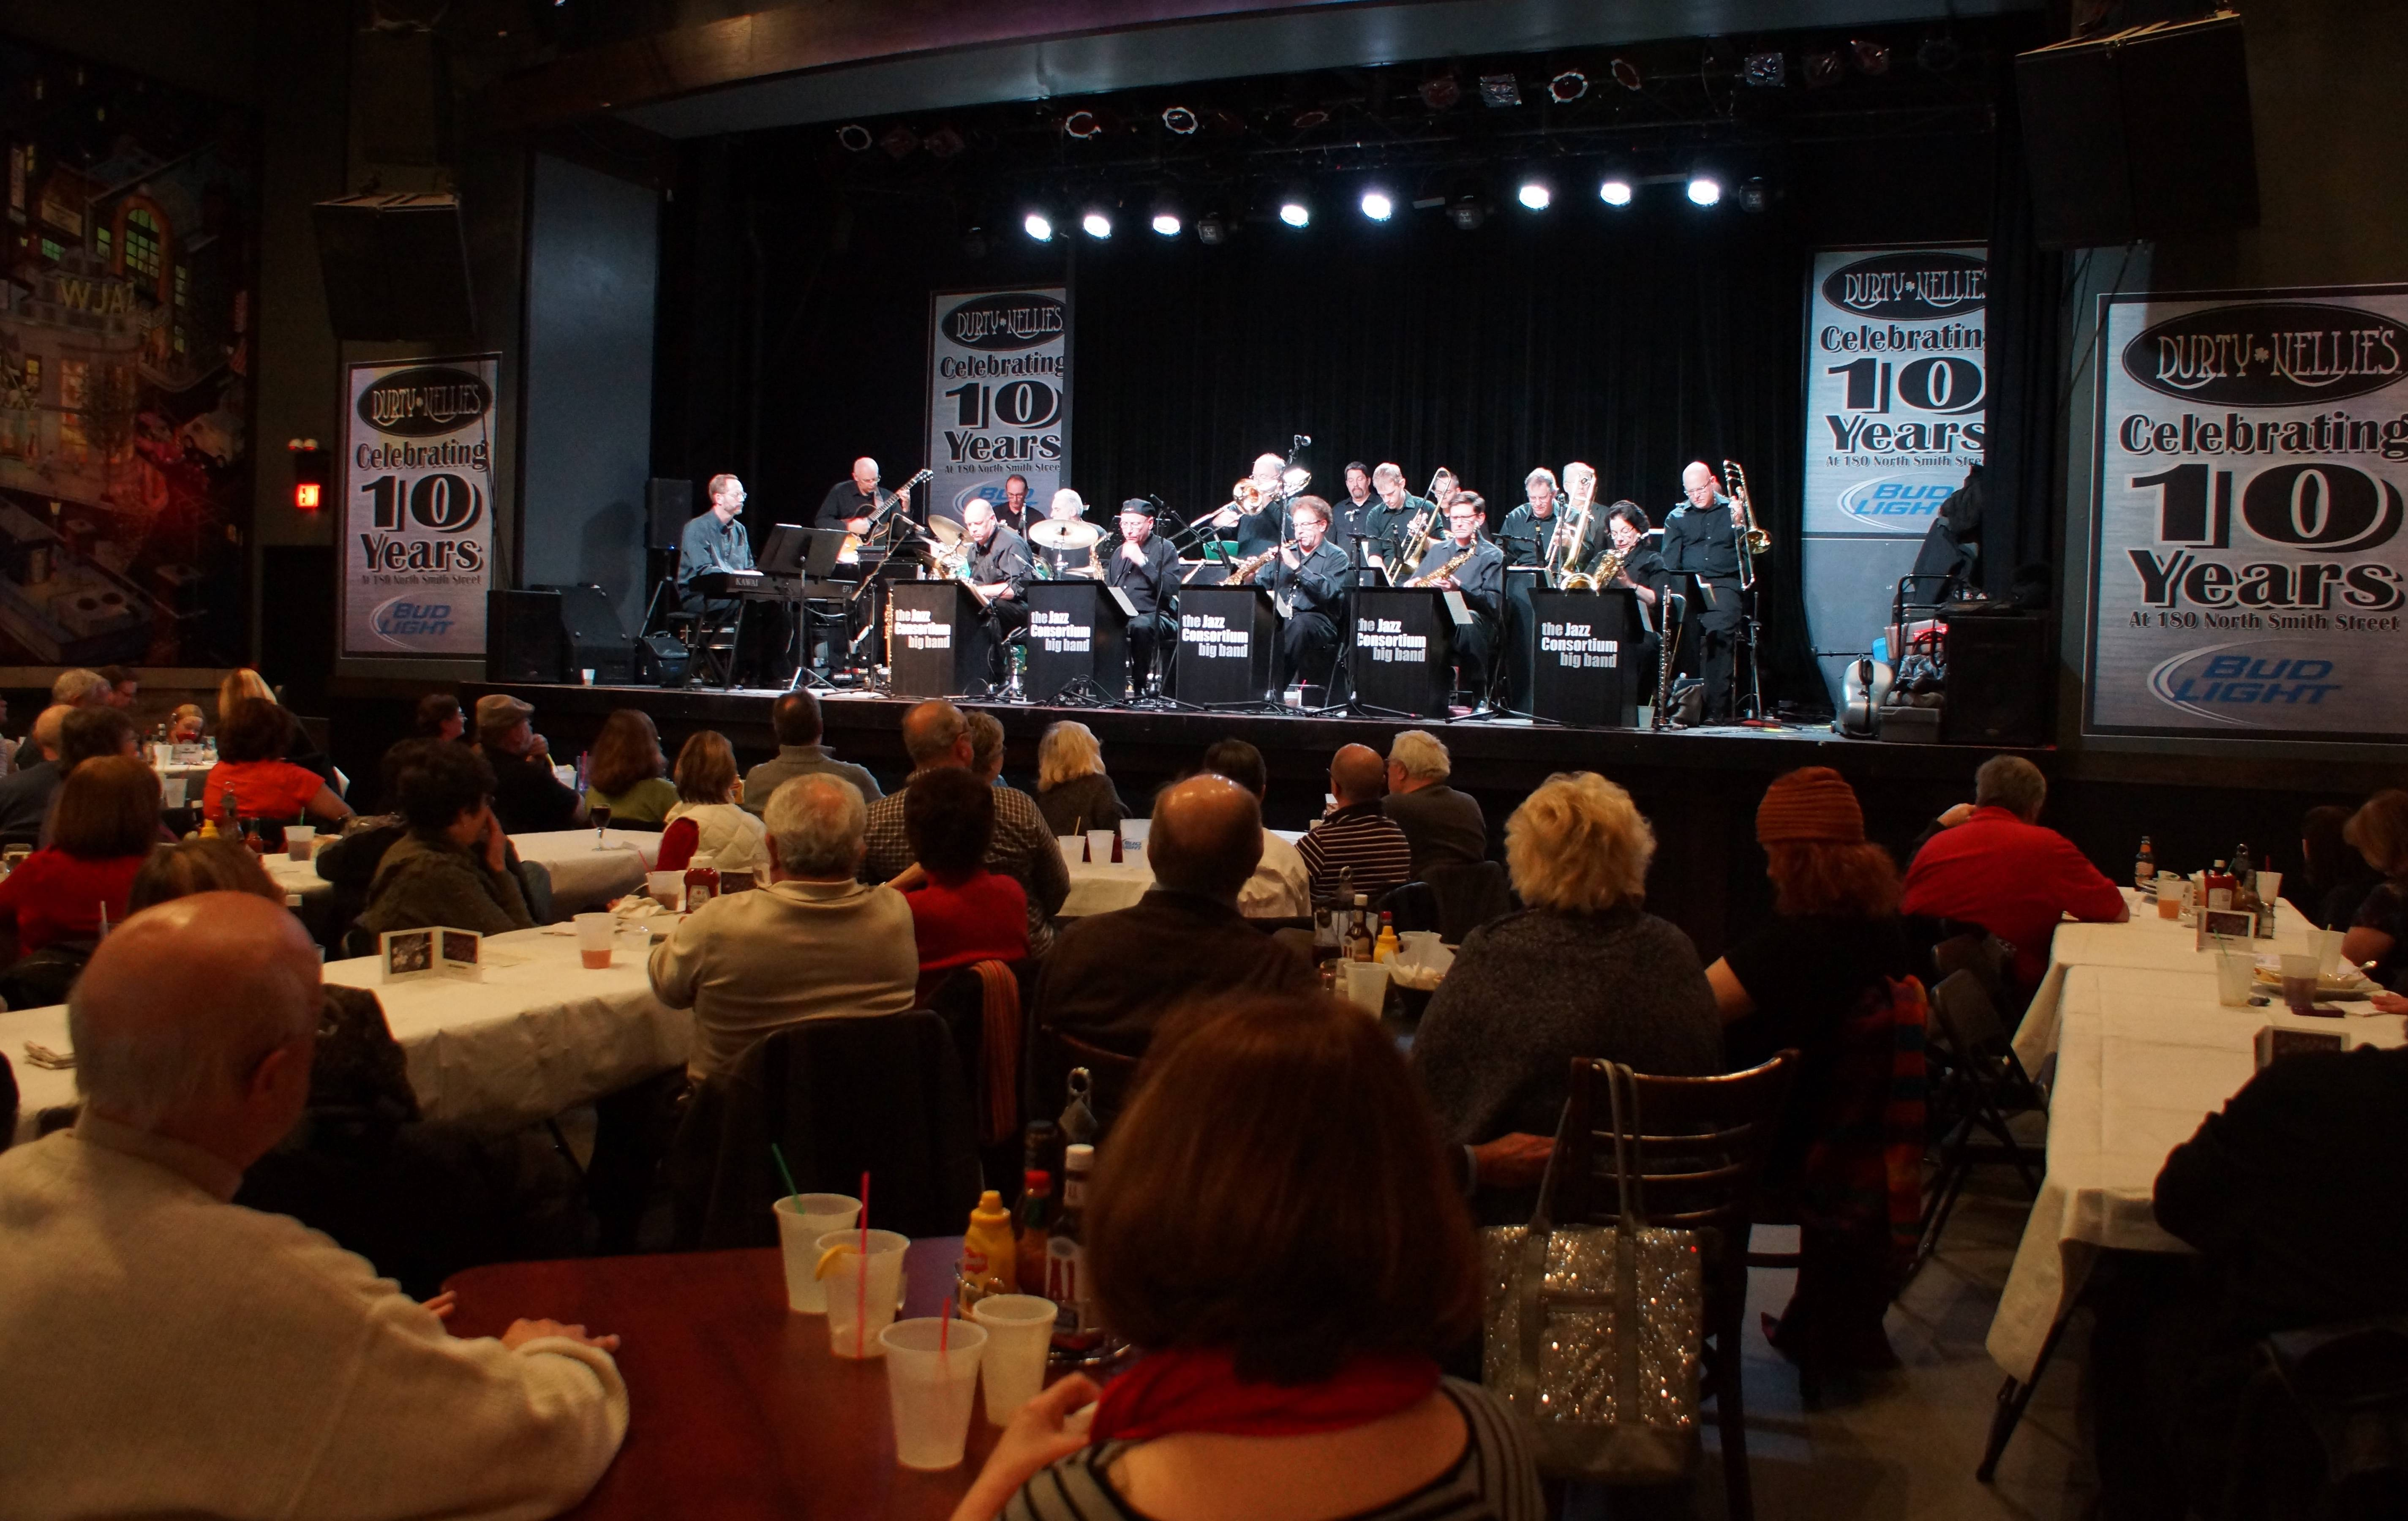 The 17-member Jazz Consortium Big Band performs at Durty Nellie's in Palatine.Alan Frohlichstein